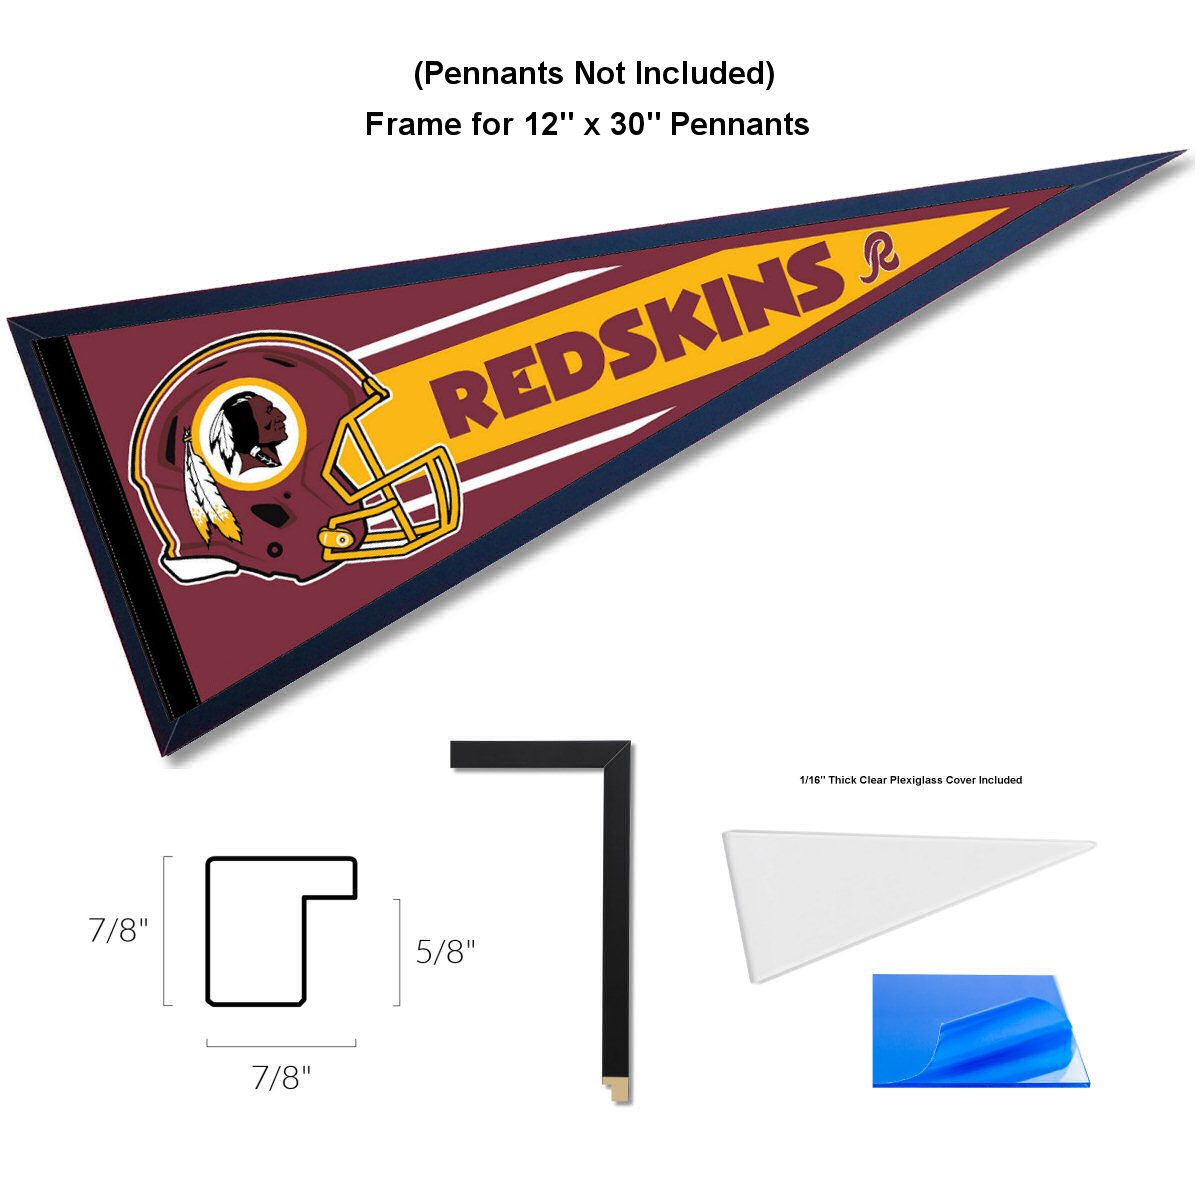 Amazon.com : Pennant Frame for 12x30 Inch Pennants : Sports & Outdoors